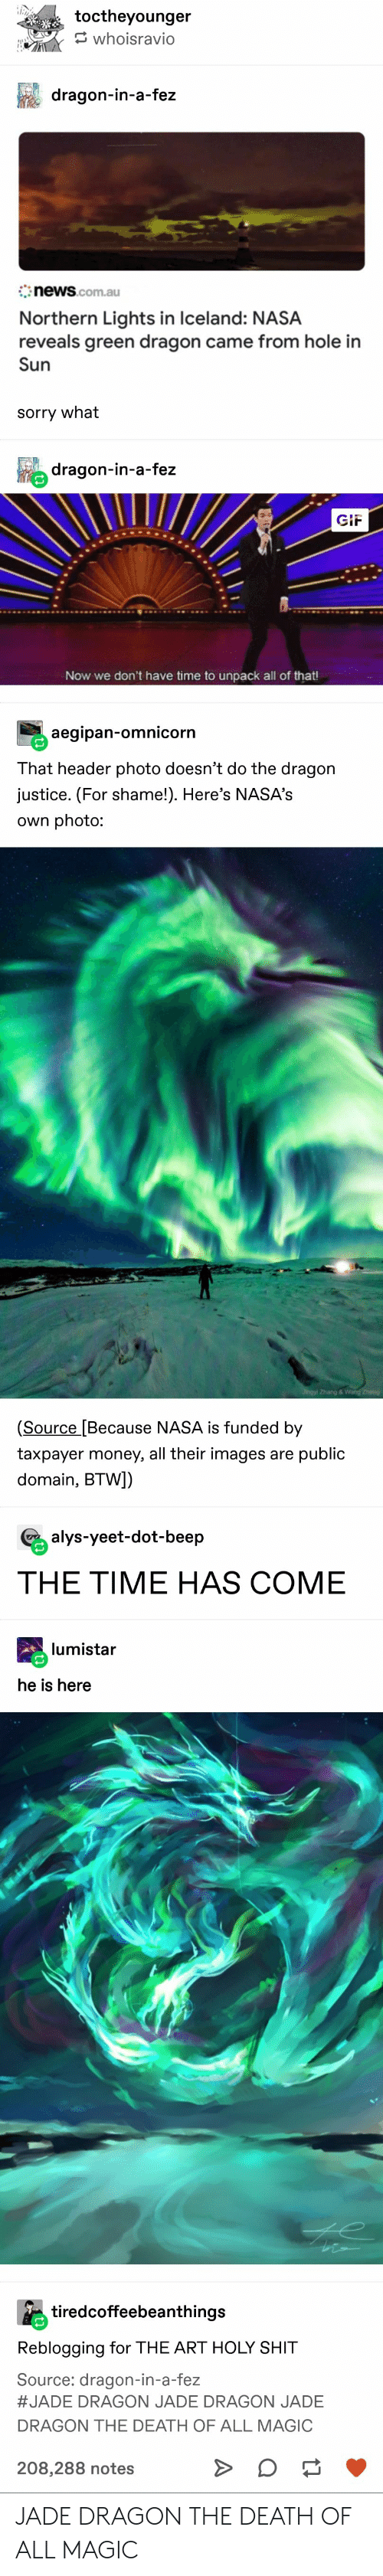 Zhang: toctheyounger  whoisravio  dragon-in-a-fez  news.com.au  Northern Lights in Iceland: NASA  reveals green dragon came from hole in  Sun  sorry what  dragon-in-a-fez  GIF  Now we don't have time to unpack all of that!  aegipan-omnicorn  That header photo doesn't do the dragon  justice. (For shame!). Here's NASA's  own photo:  Jingyl Zhang & Wang Zheng  (Source [Because NASA is funded by  taxpayer money, all their images are public  domain, BTW])  alys-yeet-dot-beep  THE TIME HAS COME  lumistar  he is here  tiredcoffeebeanthings  Reblogging for THE ART HOLY SHIT  Source: dragon-in-a-fez  #JADE DRAGON JADE DRAGON JADE  DRAGON THE DEATH OF ALL MAGIC  208,288 notes JADE DRAGON THE DEATH OF ALL MAGIC